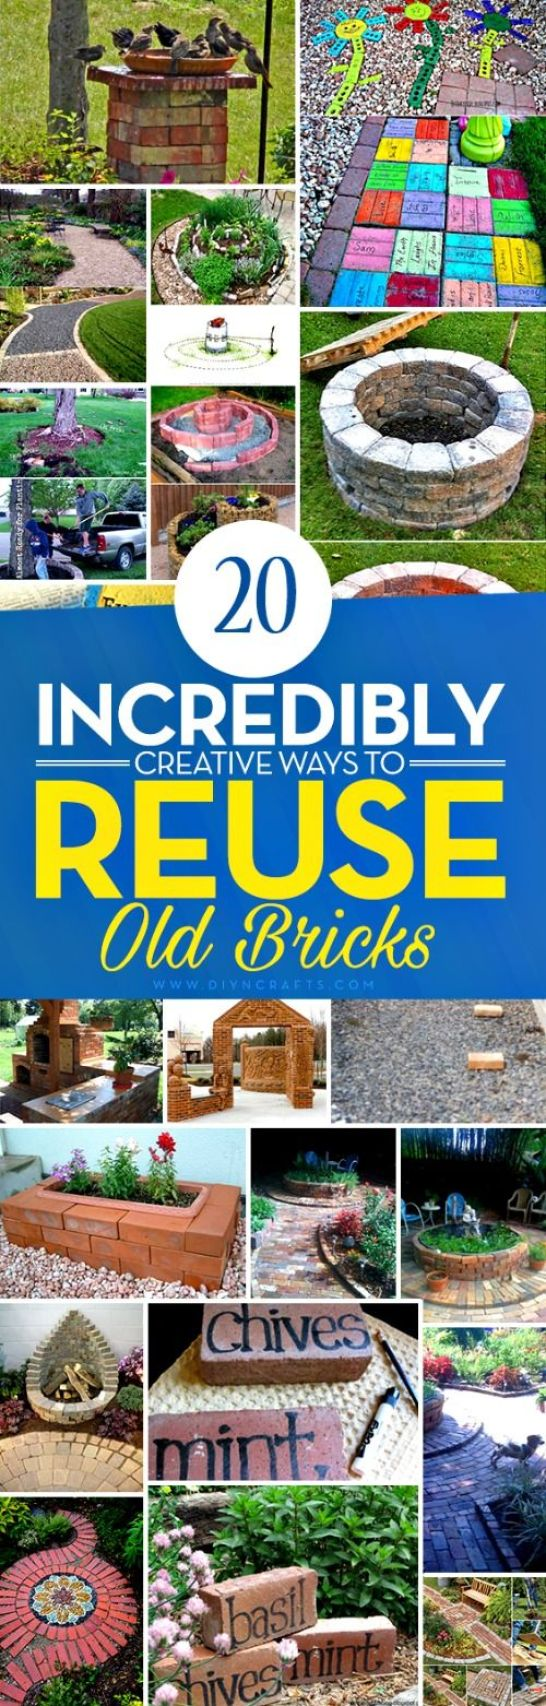 These repurposed brick DIYs are so awesome!